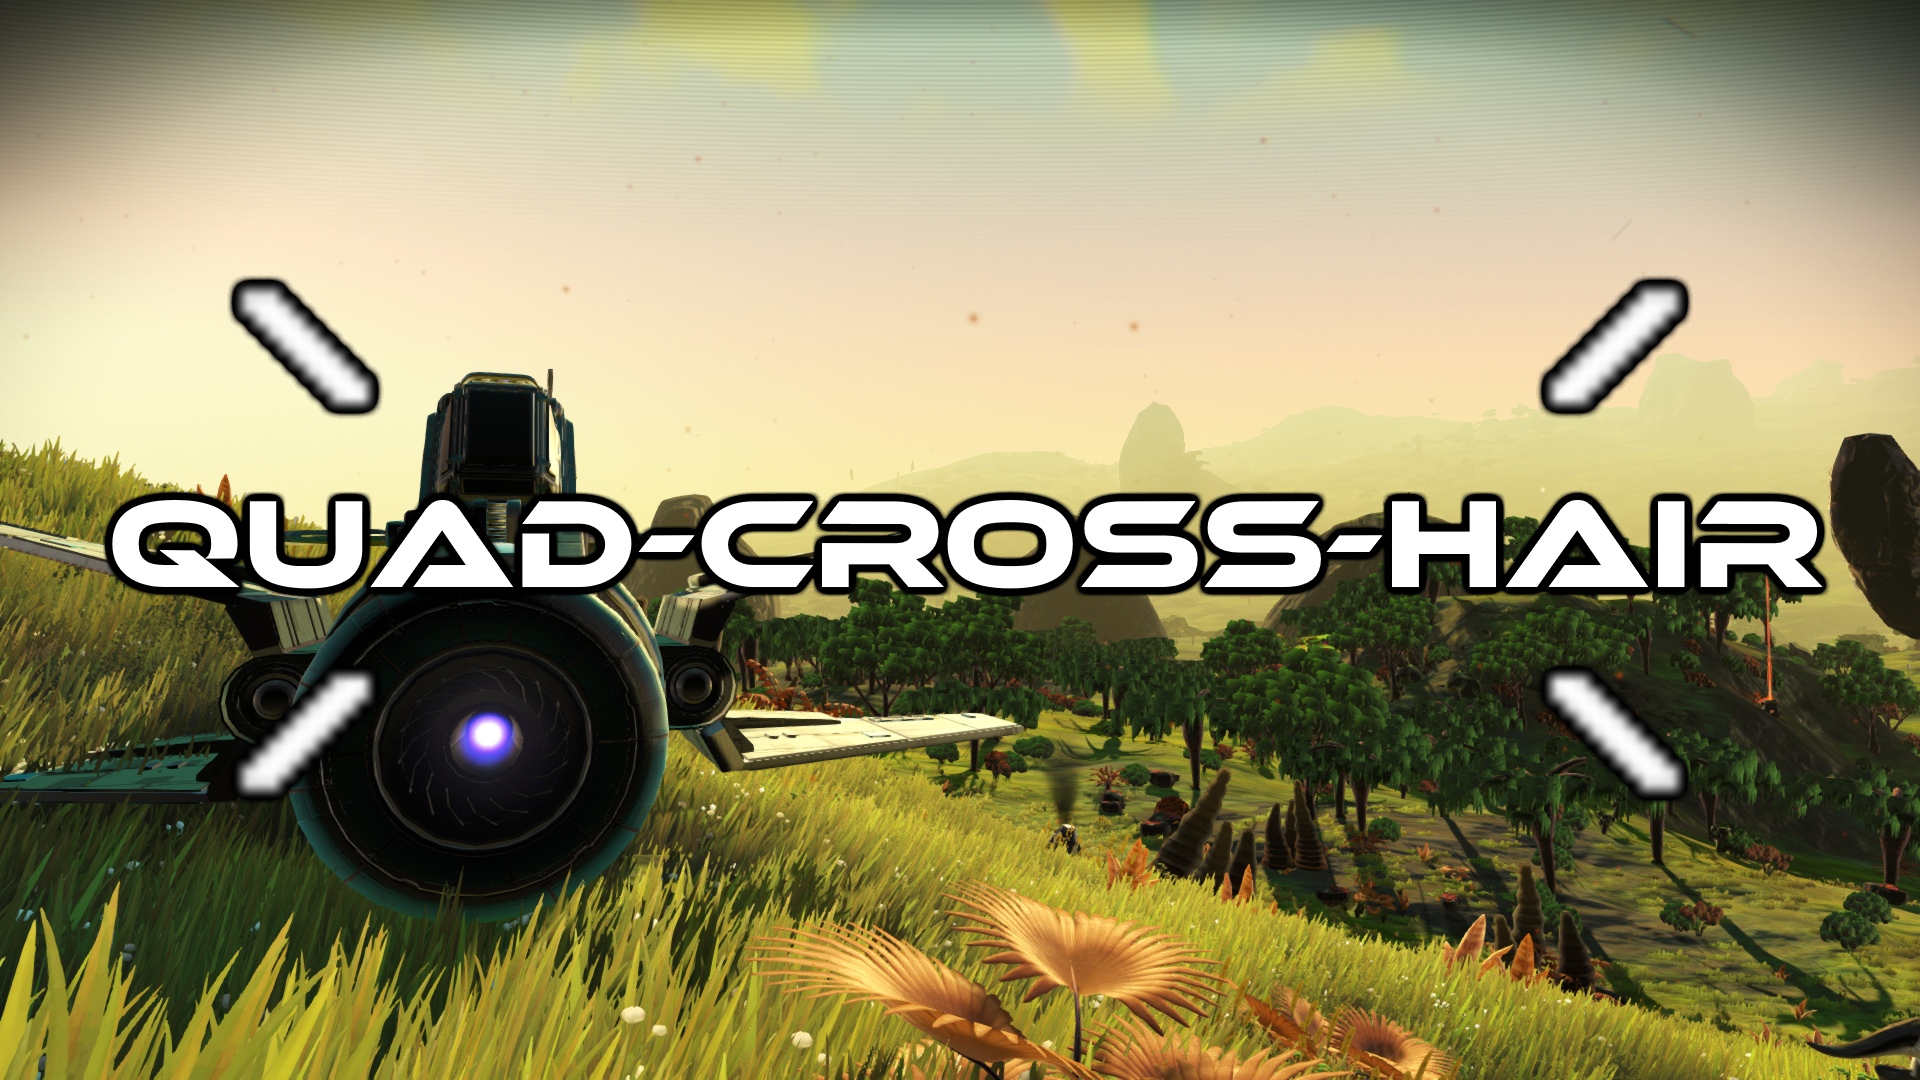 [UPDATED] Four Pronged Crosshair MK2 (re-make)